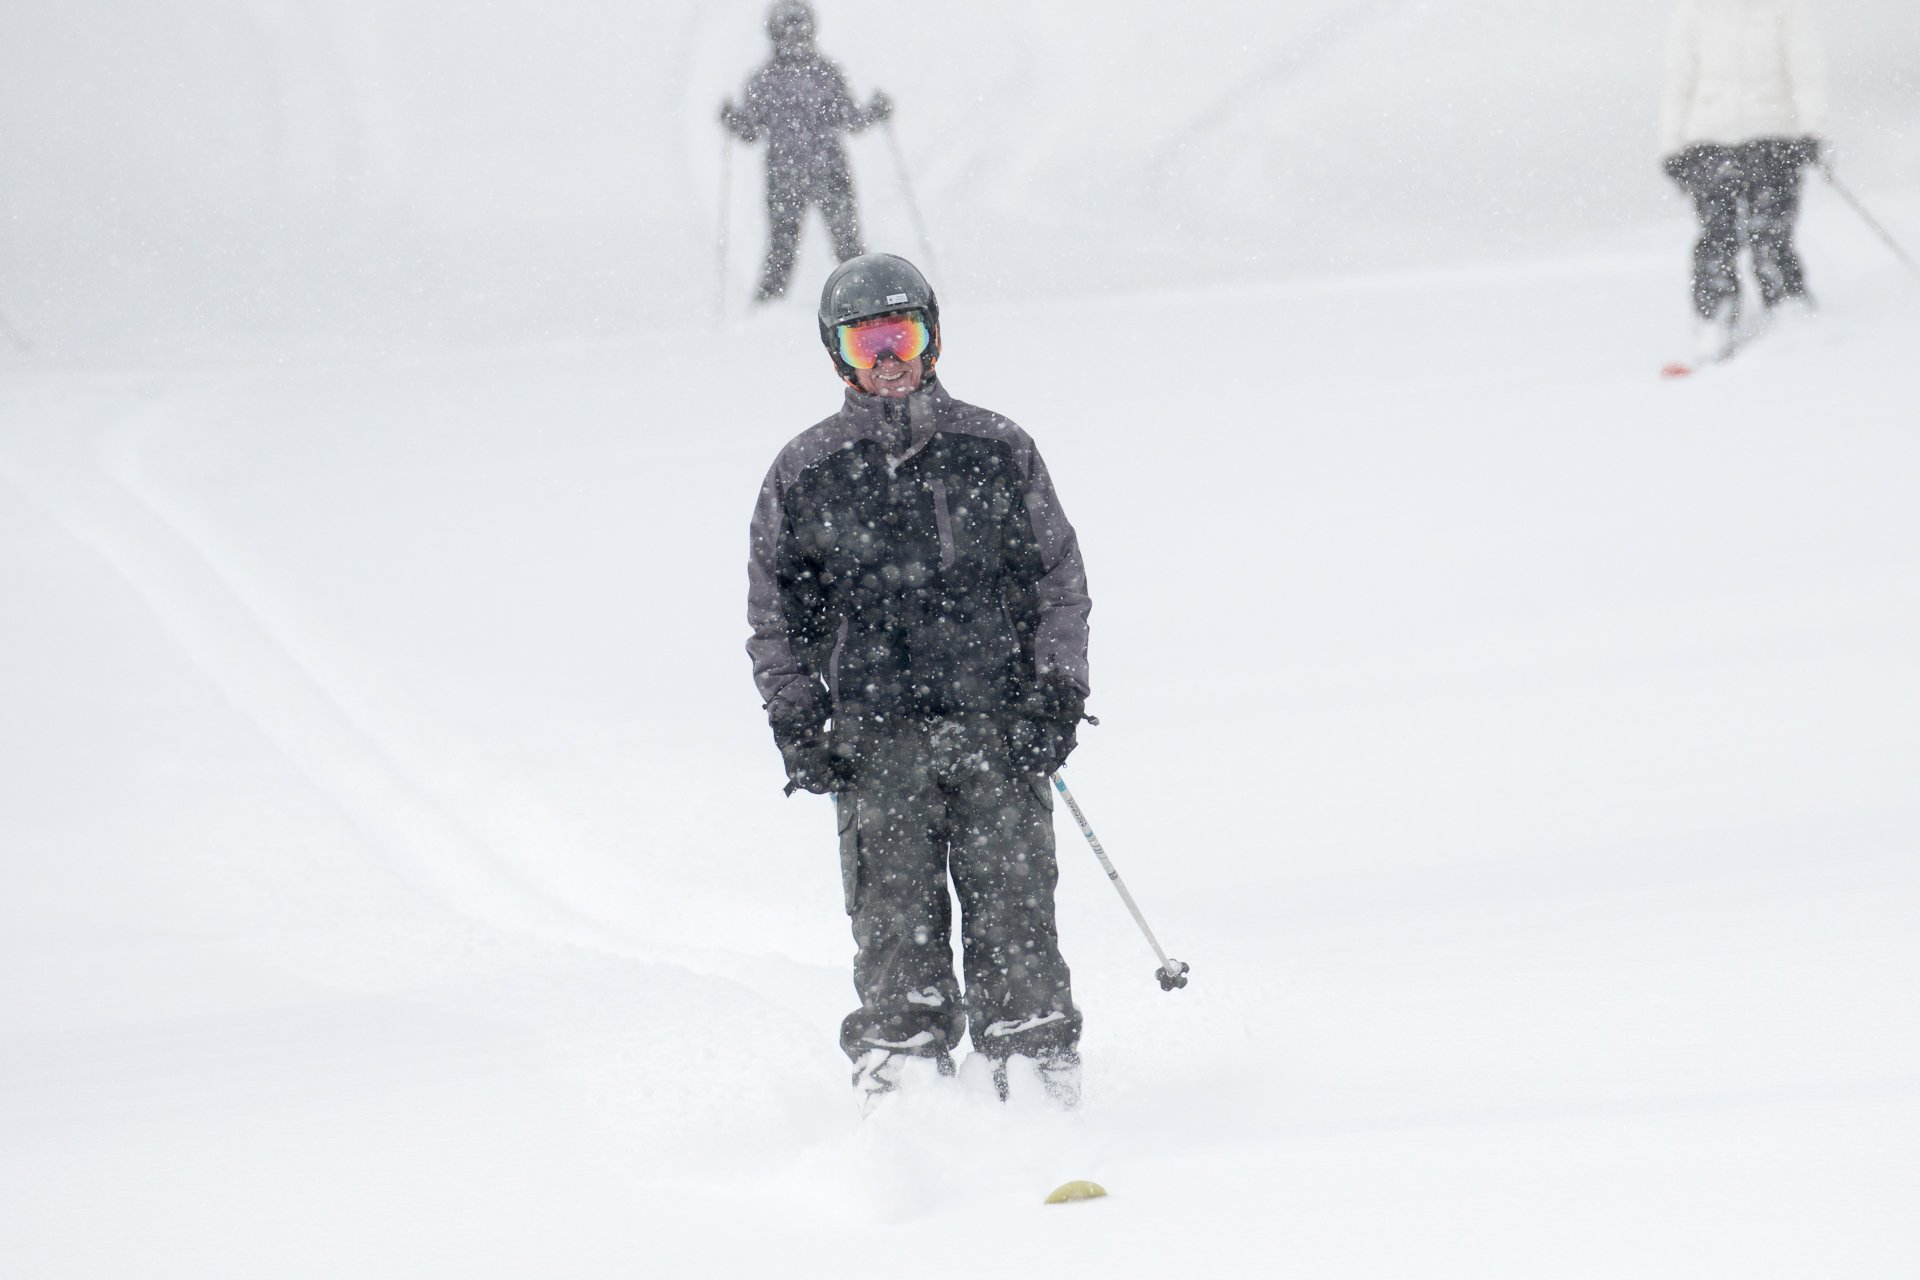 'Avalanche!' Blizzard Leaves 1 Dead at California Ski Resort